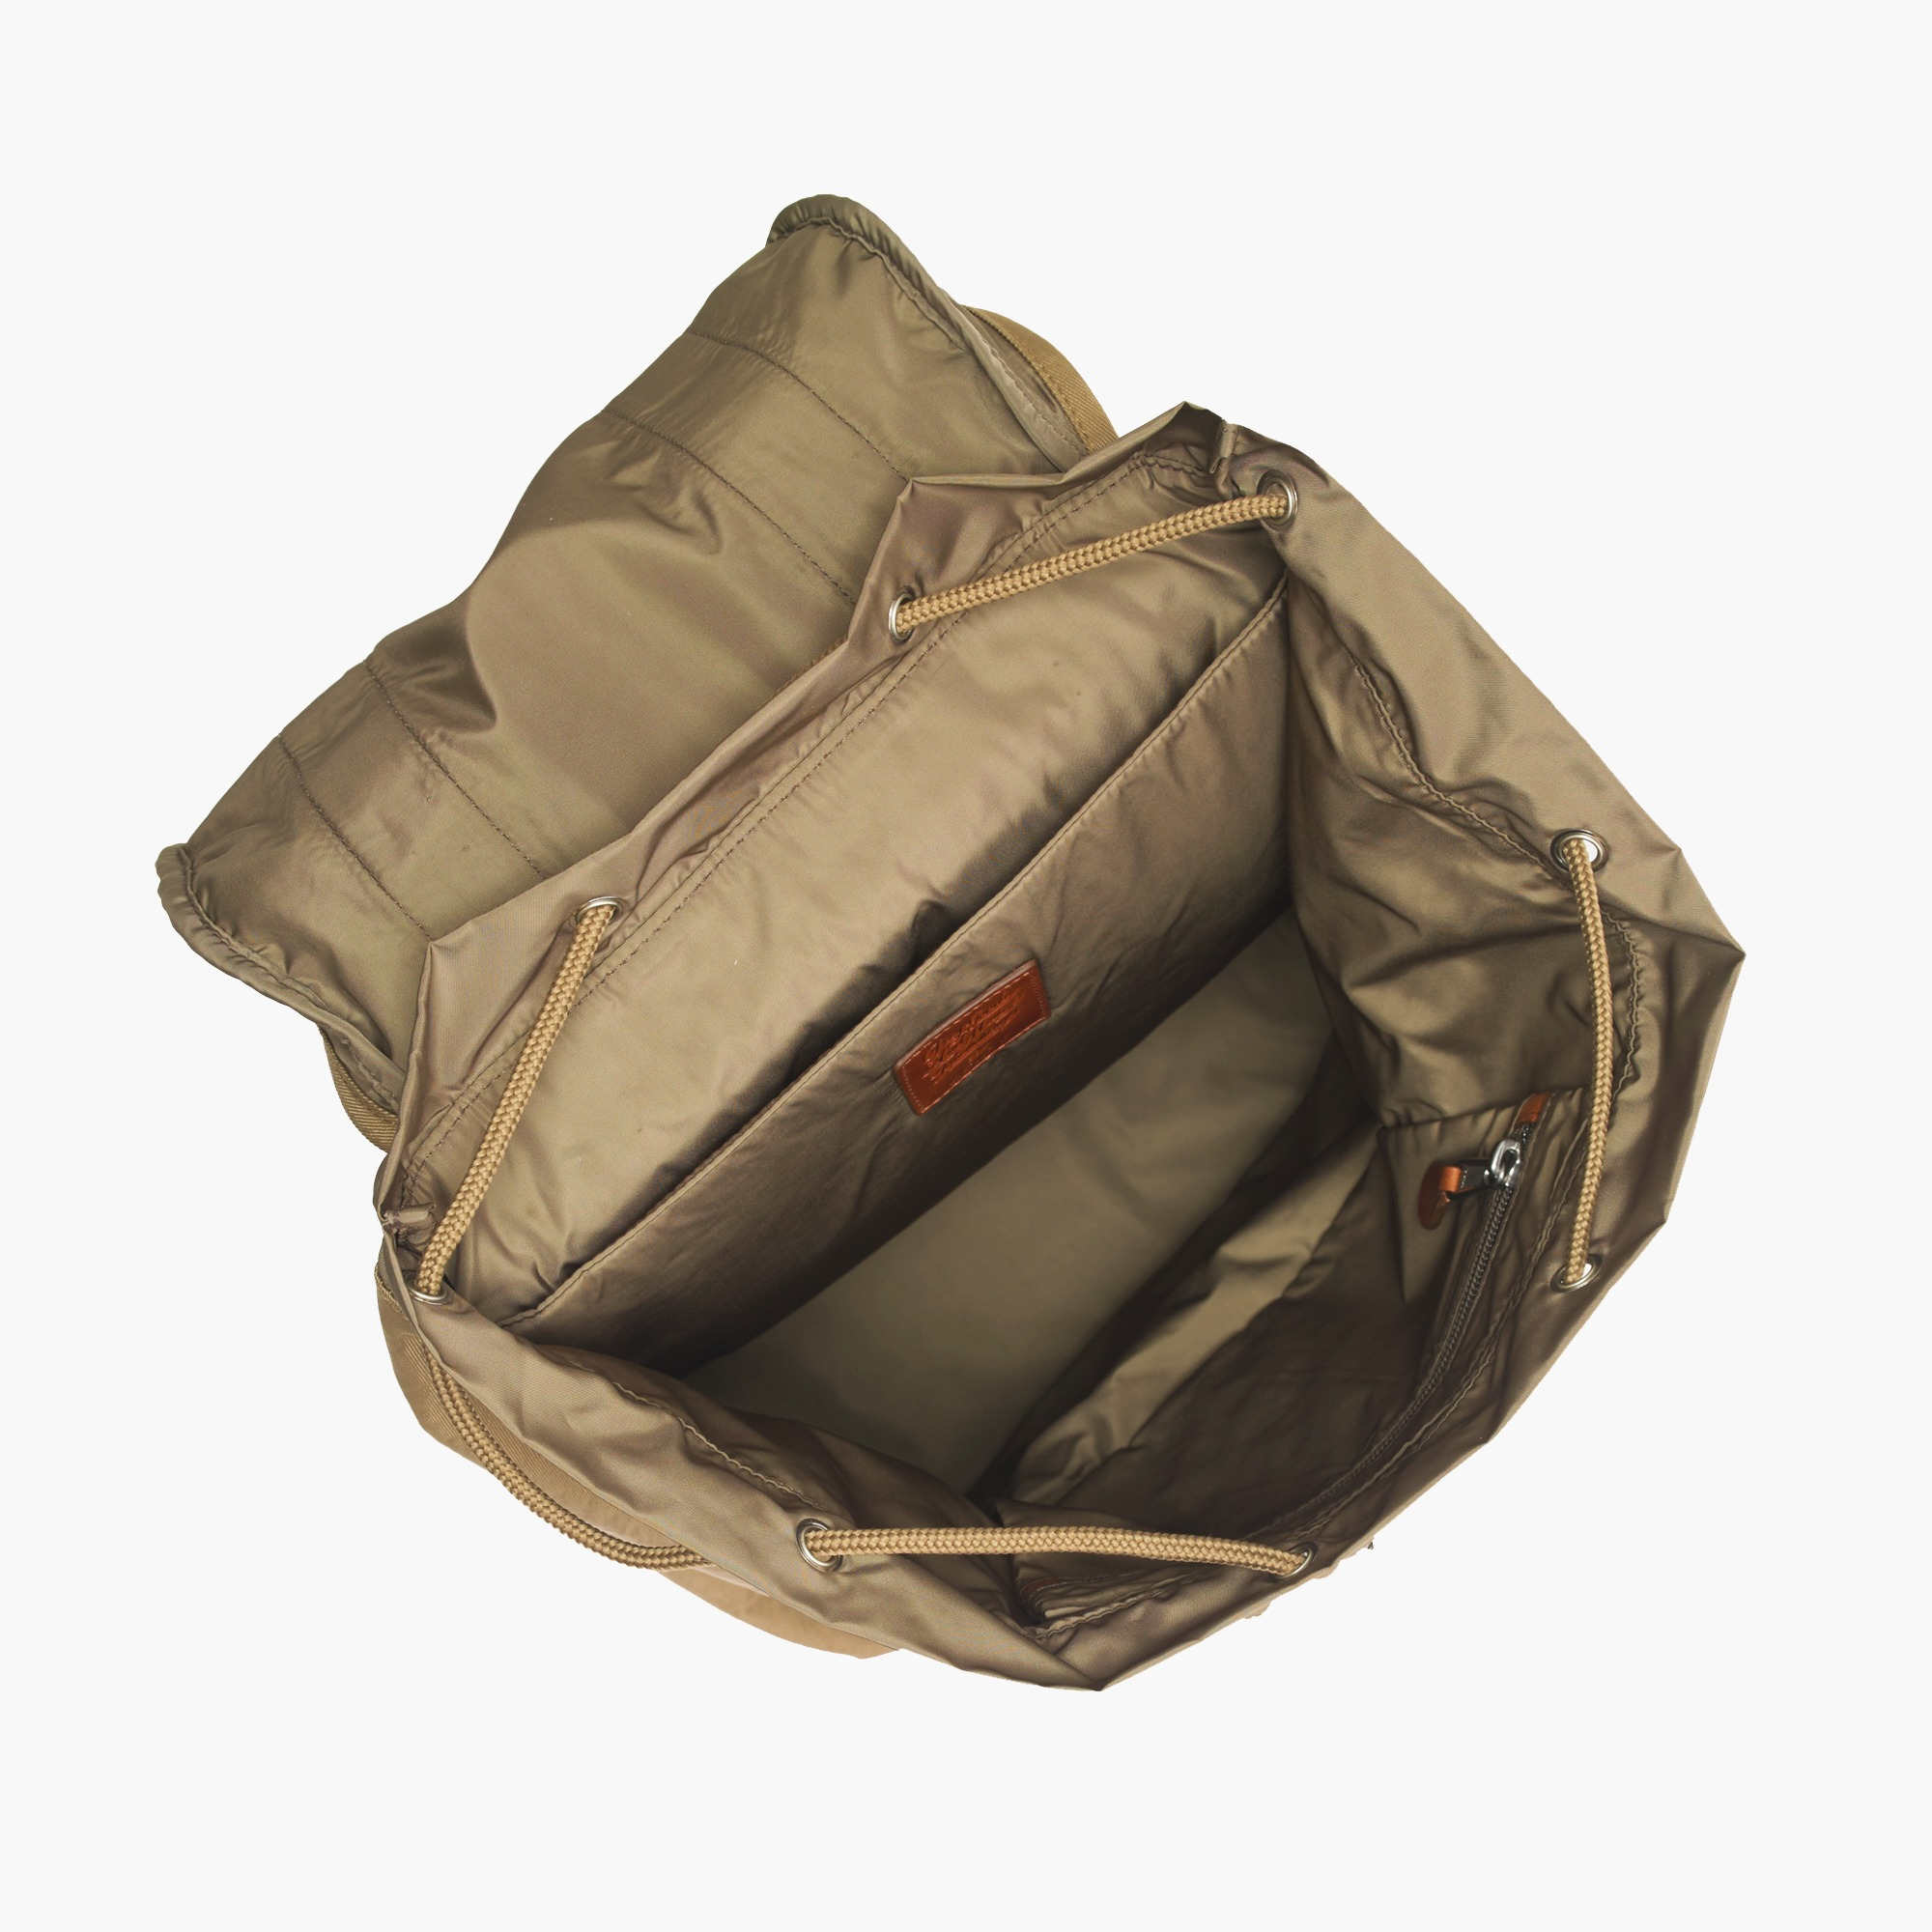 Harwick backpack